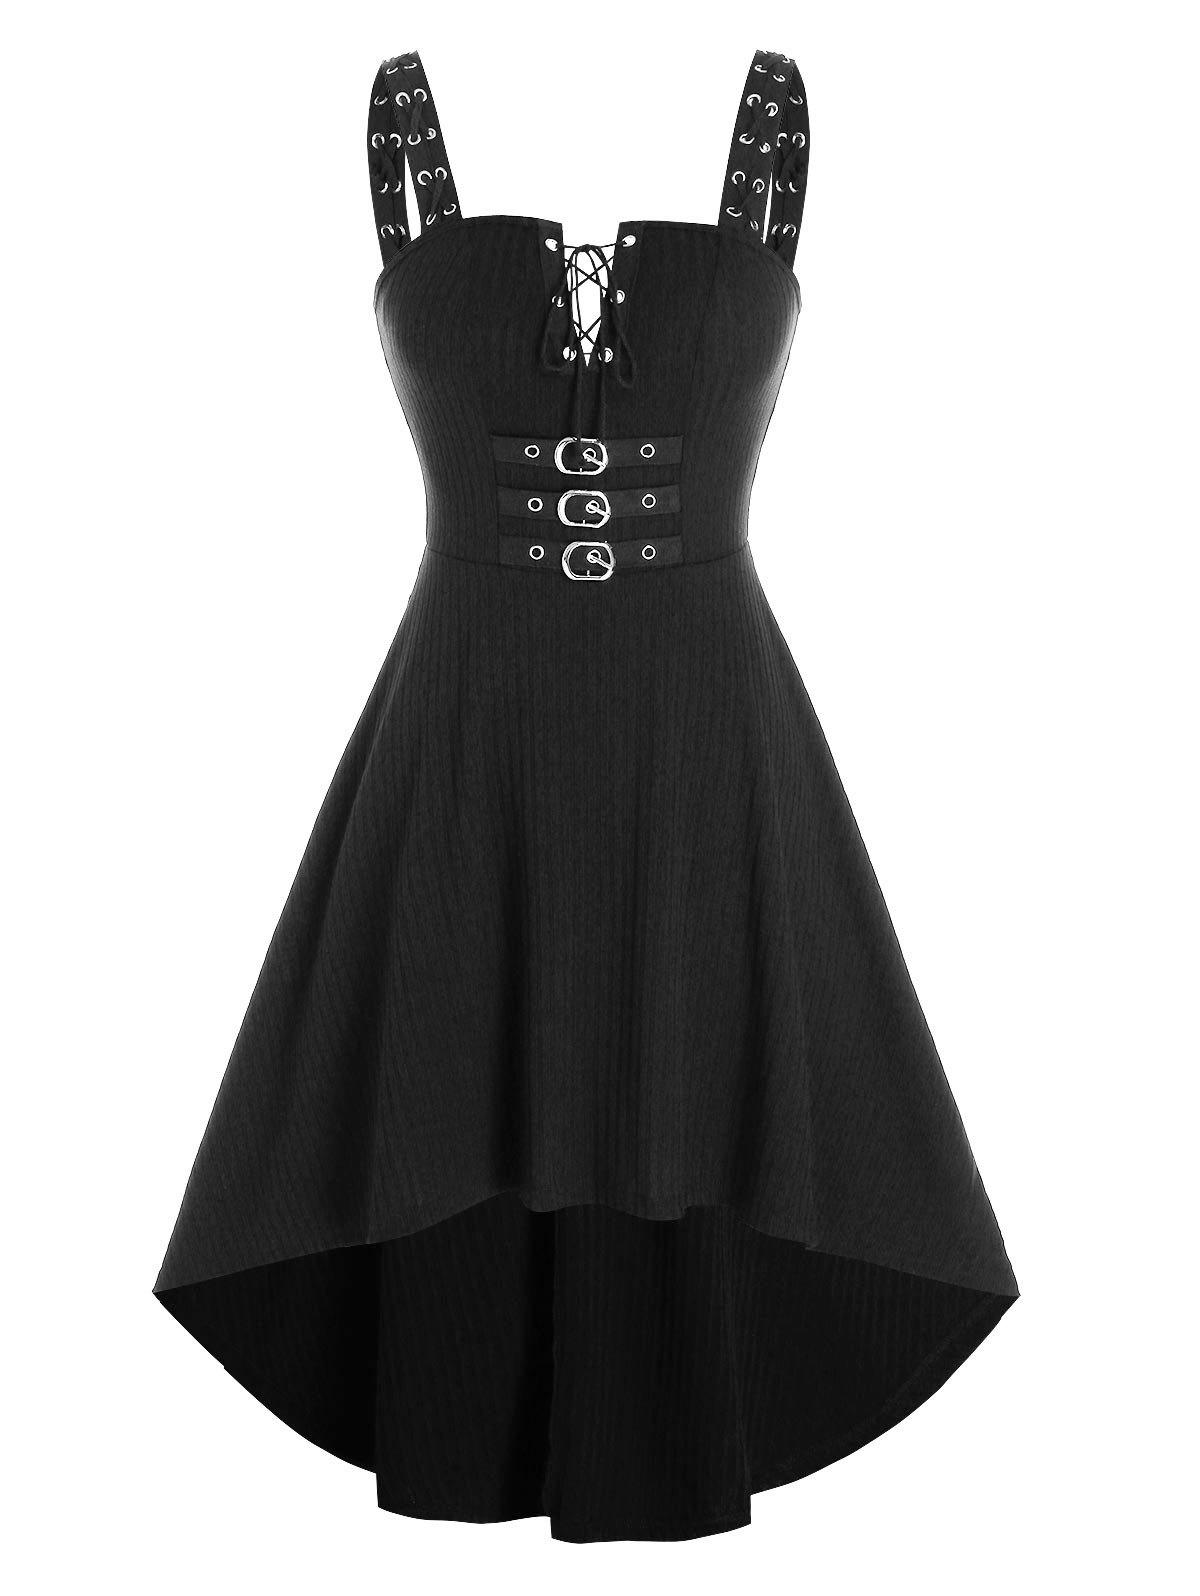 Shop Lace Up Buckled Knitted Cami High Low Dress